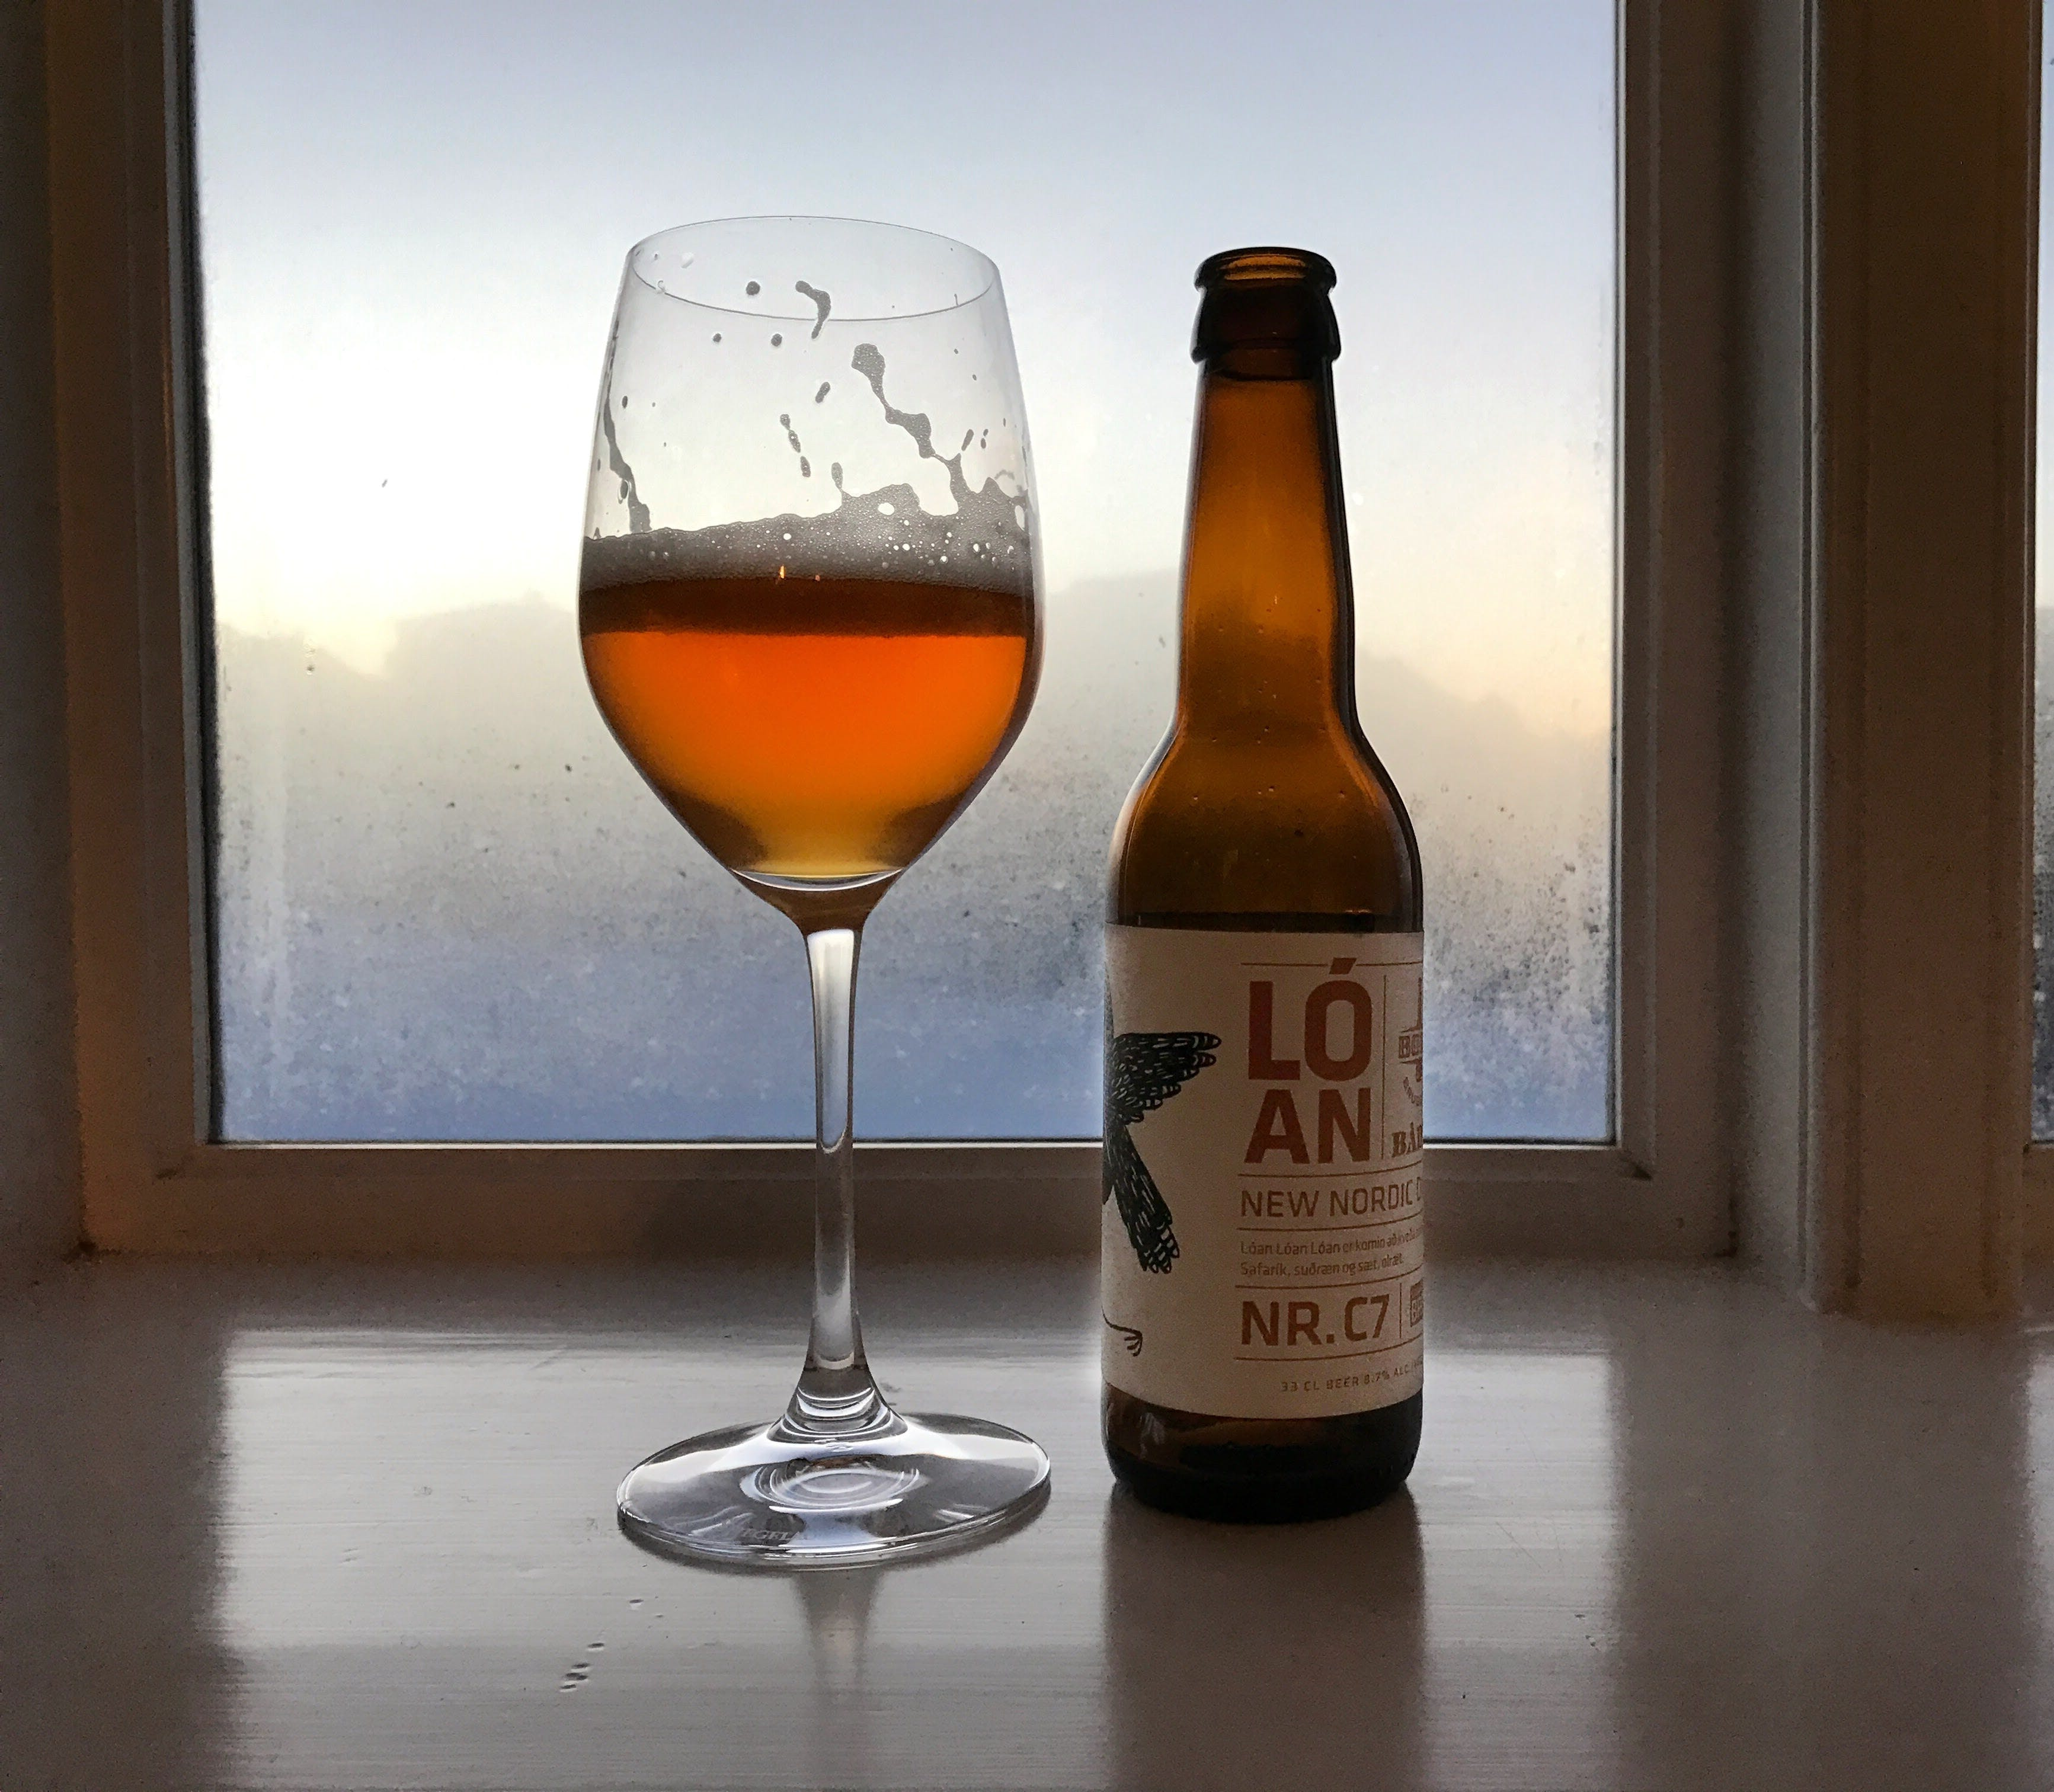 Refreshingly cold Nordic Saison on a cold winter's day.